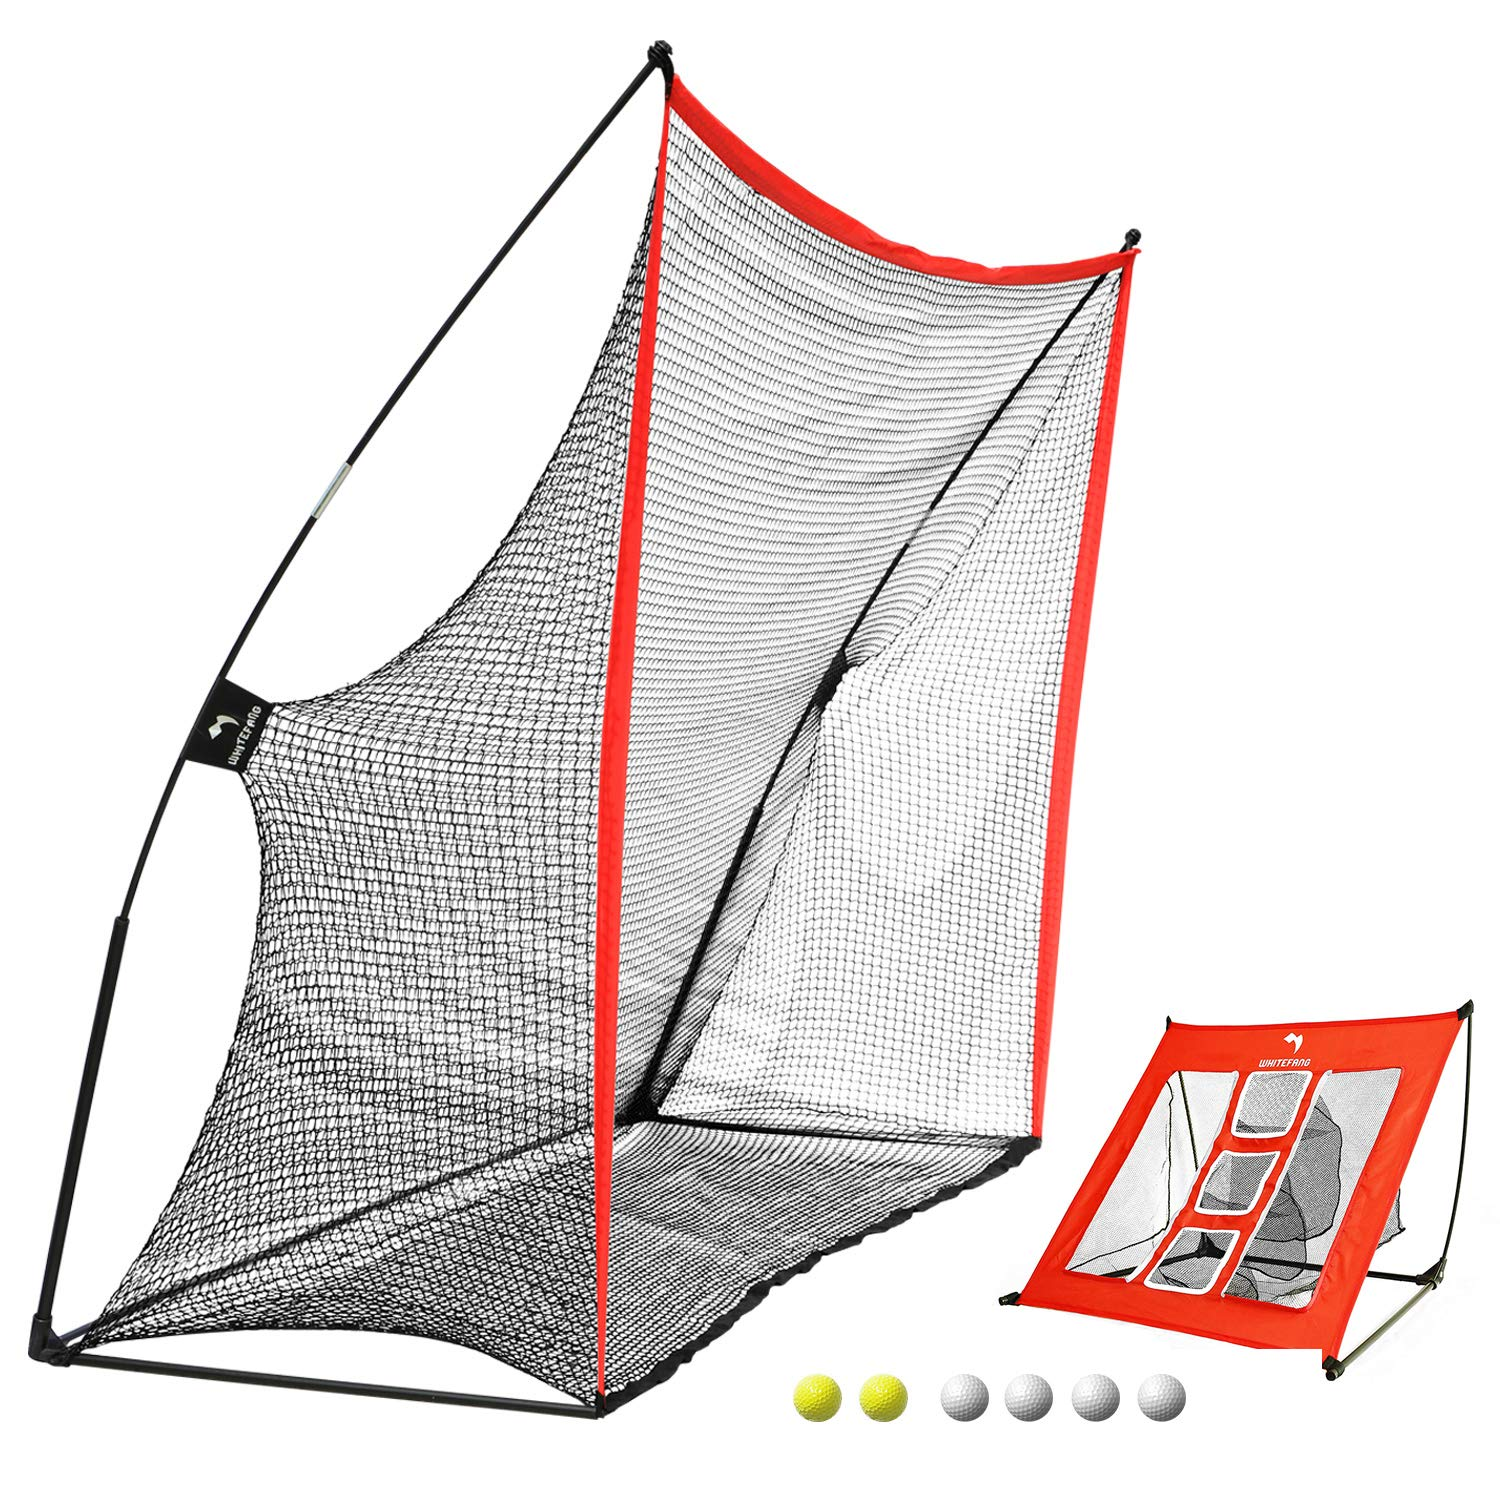 WhiteFang Golf Net | 4 in 1 Golf Practice Set 10x7ft Include Golf Chipping Net|Golf Hitting Mat|Golf Balls with Portable Carry Bag for Backyard/Indoor/Outdoor